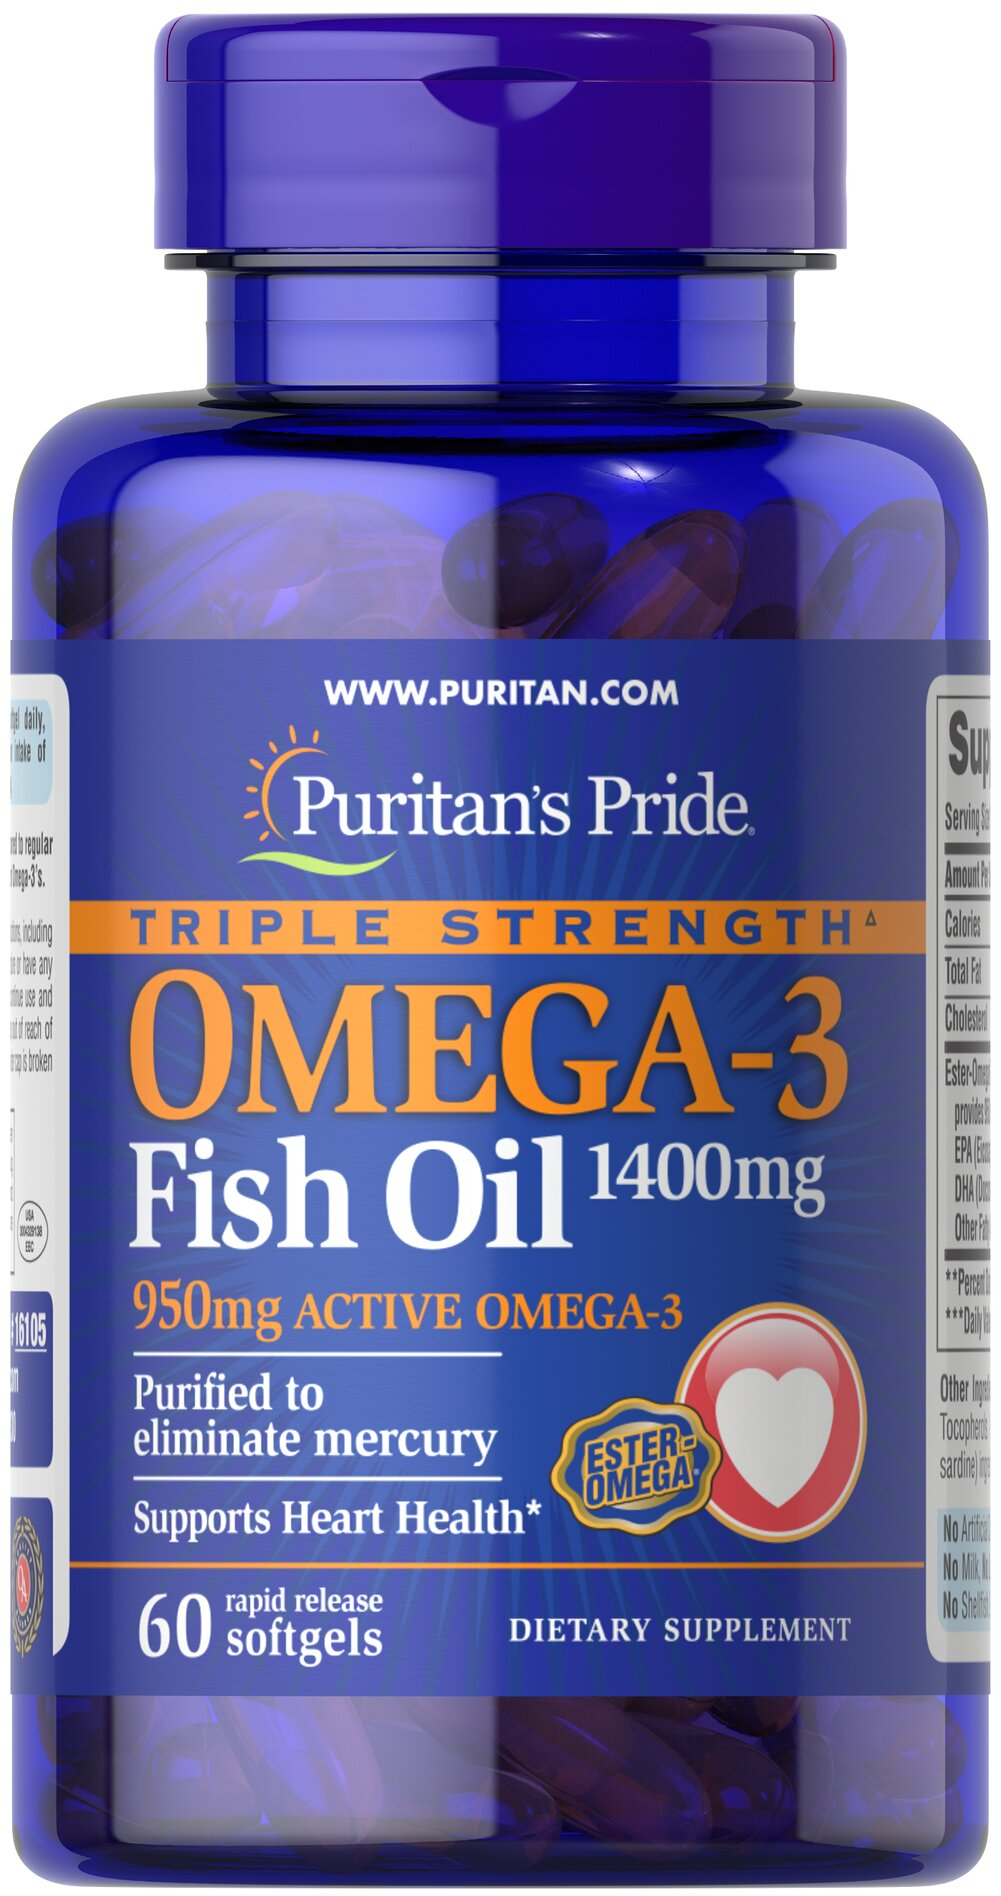 Triple Strength Omega-3 Fish Oil 1360 mg (950 mg Active Omega-3) <p><strong>Purified to Eliminate Mercury</strong></p><p>Contains 950 mg of active Omega-3 per softgel — our highest potency! </p> 60 Softgels 1360 mg $20.99